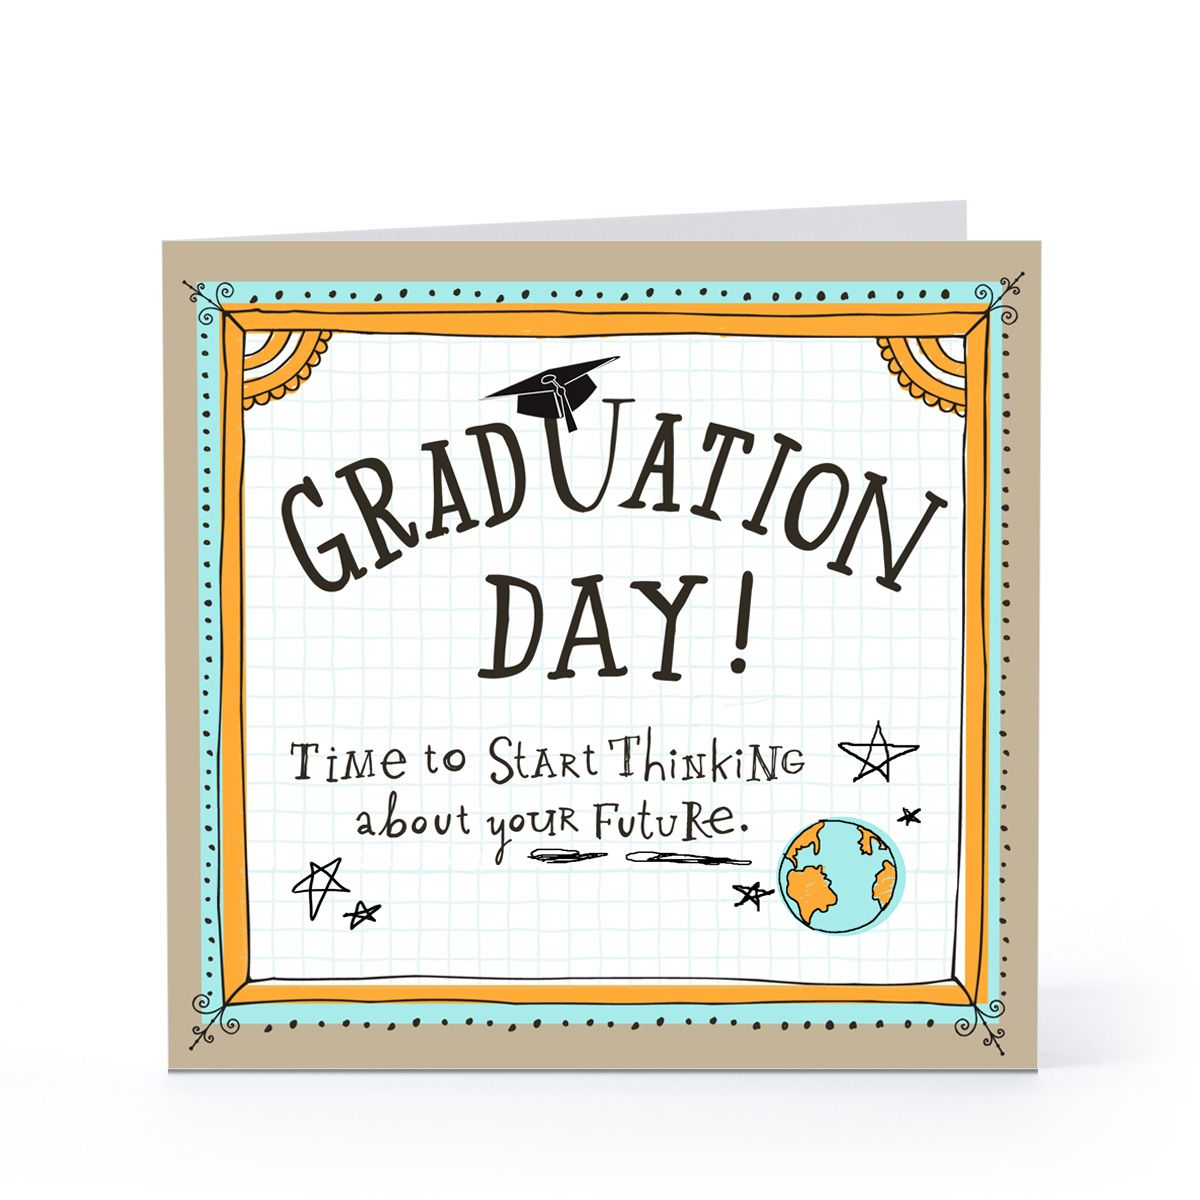 Graduation card graduationexams cards group board graduation card graduation greetingsgraduation kristyandbryce Gallery